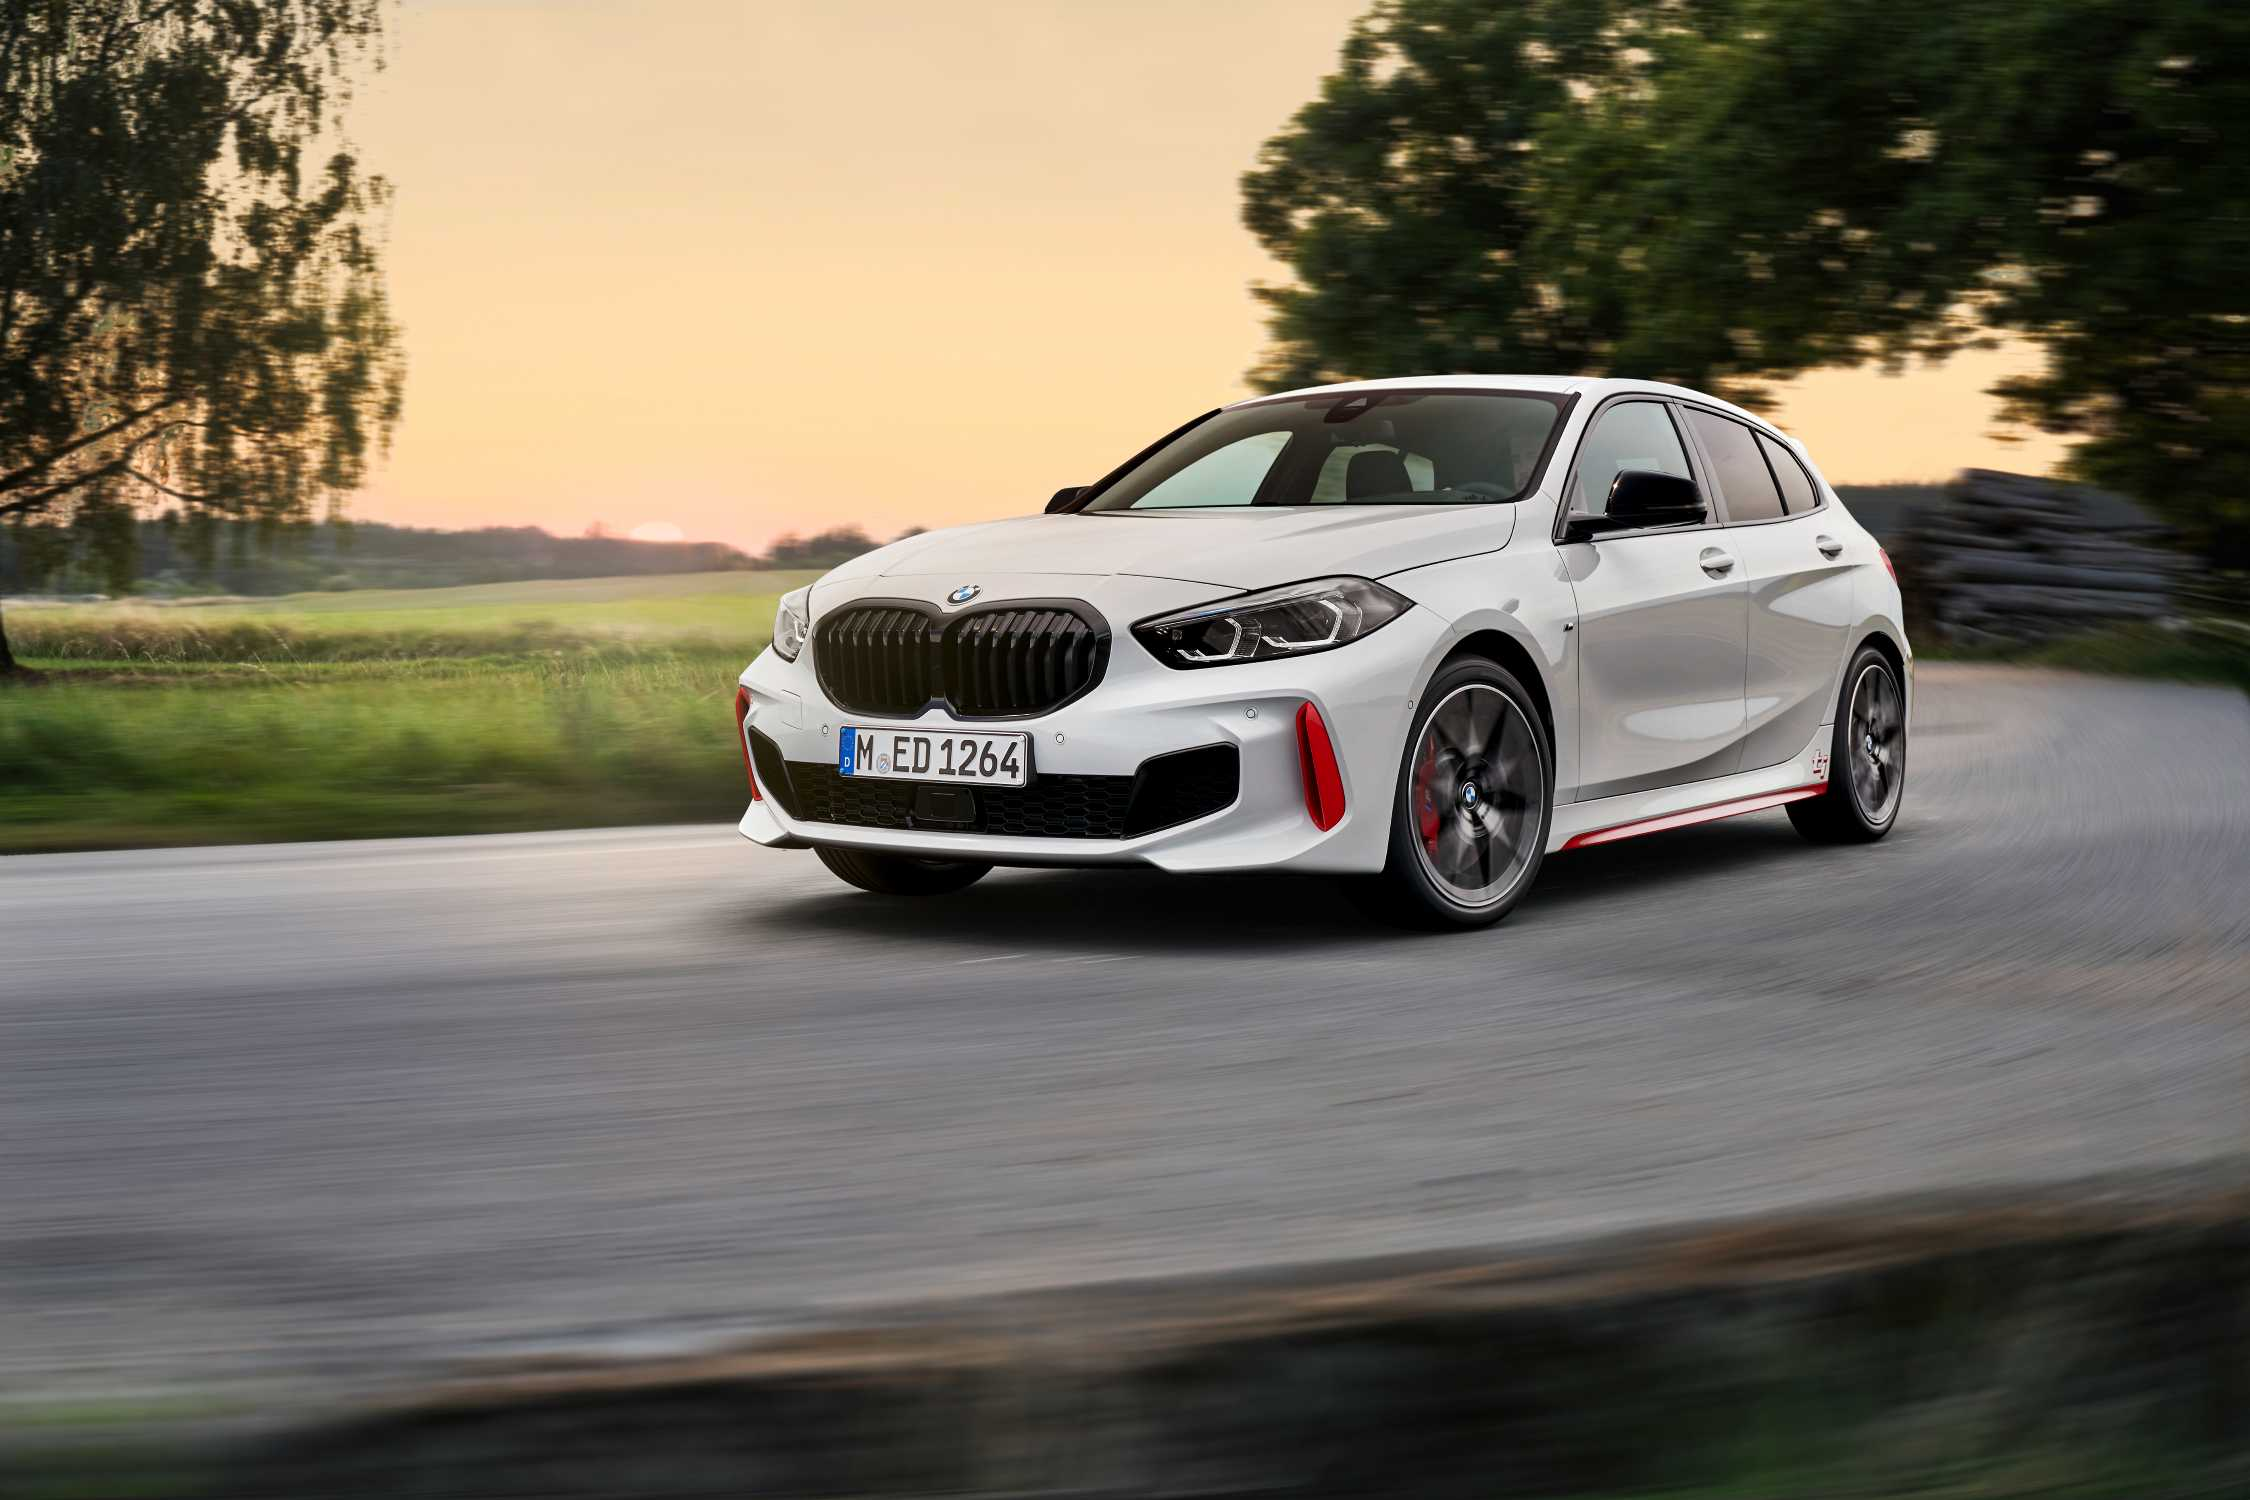 https://mediapool.bmwgroup.com/cache/P9/202009/P90402184/P90402184-the-all-new-bmw-128ti-alpine-white-y-rim-18-styling-553-m-10-2020-2250px.jpg